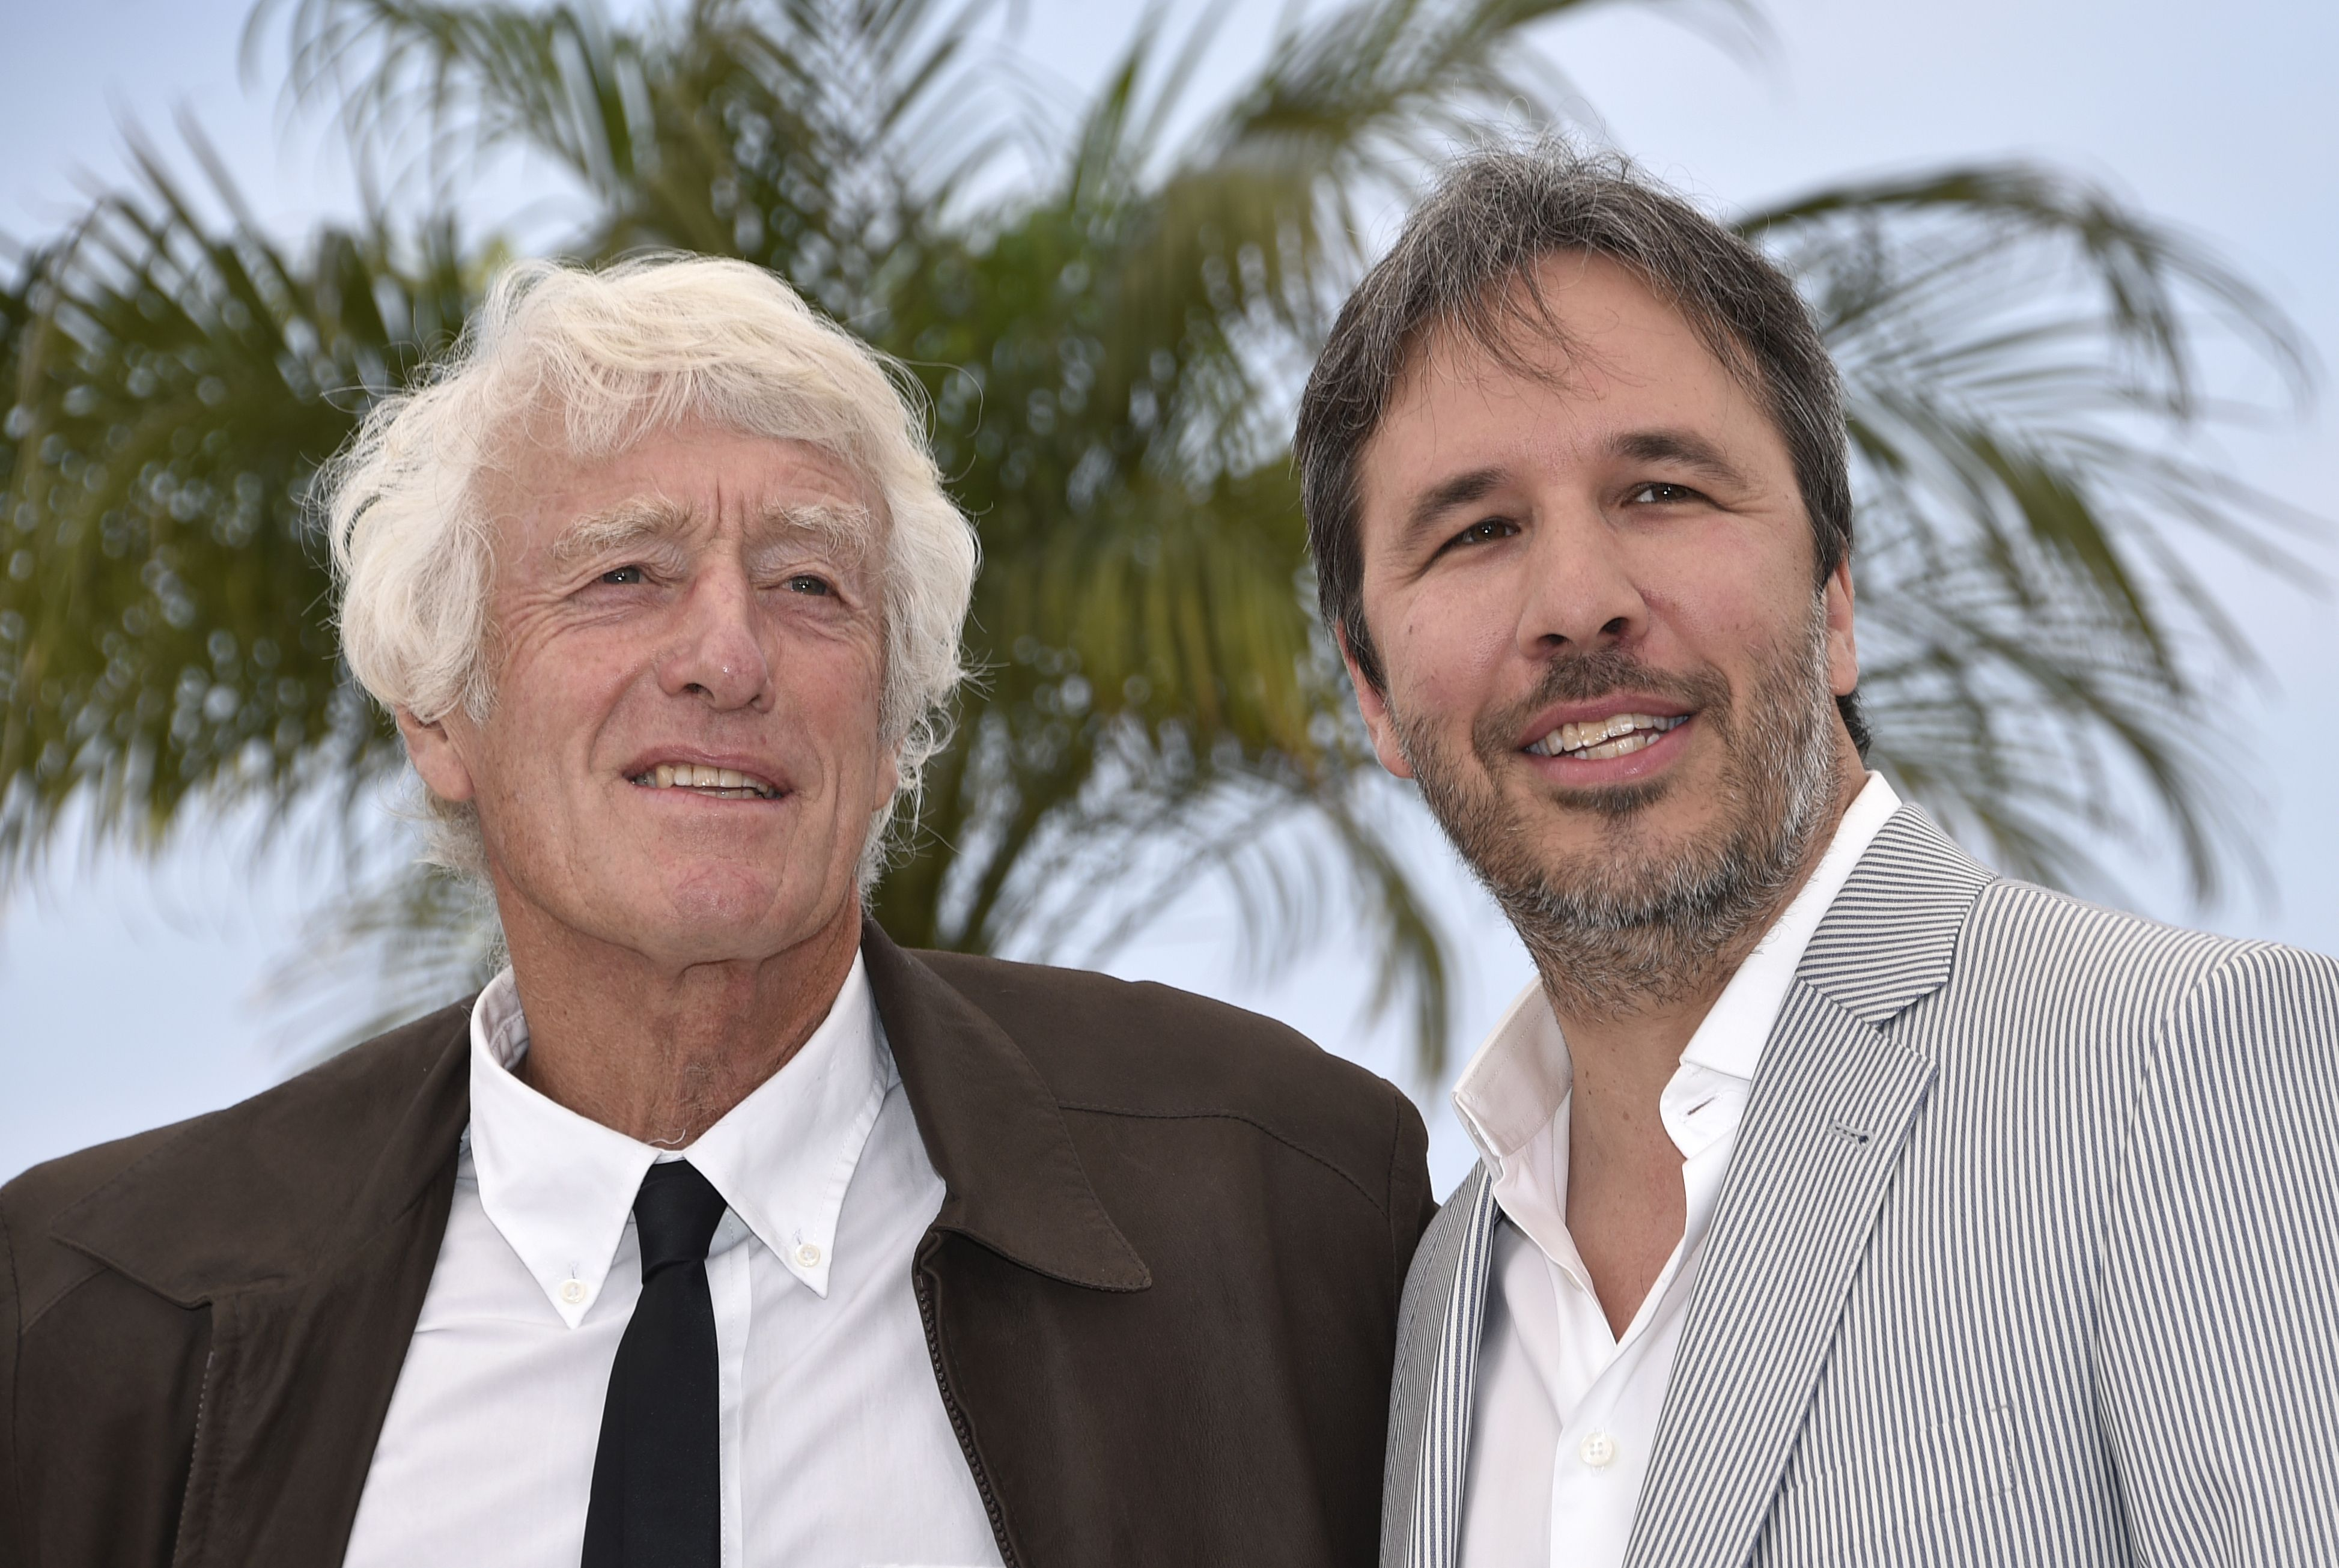 Deakins and Villeneuve Discuss Their Best Scene, Two 'Prisoners' Endings, and More